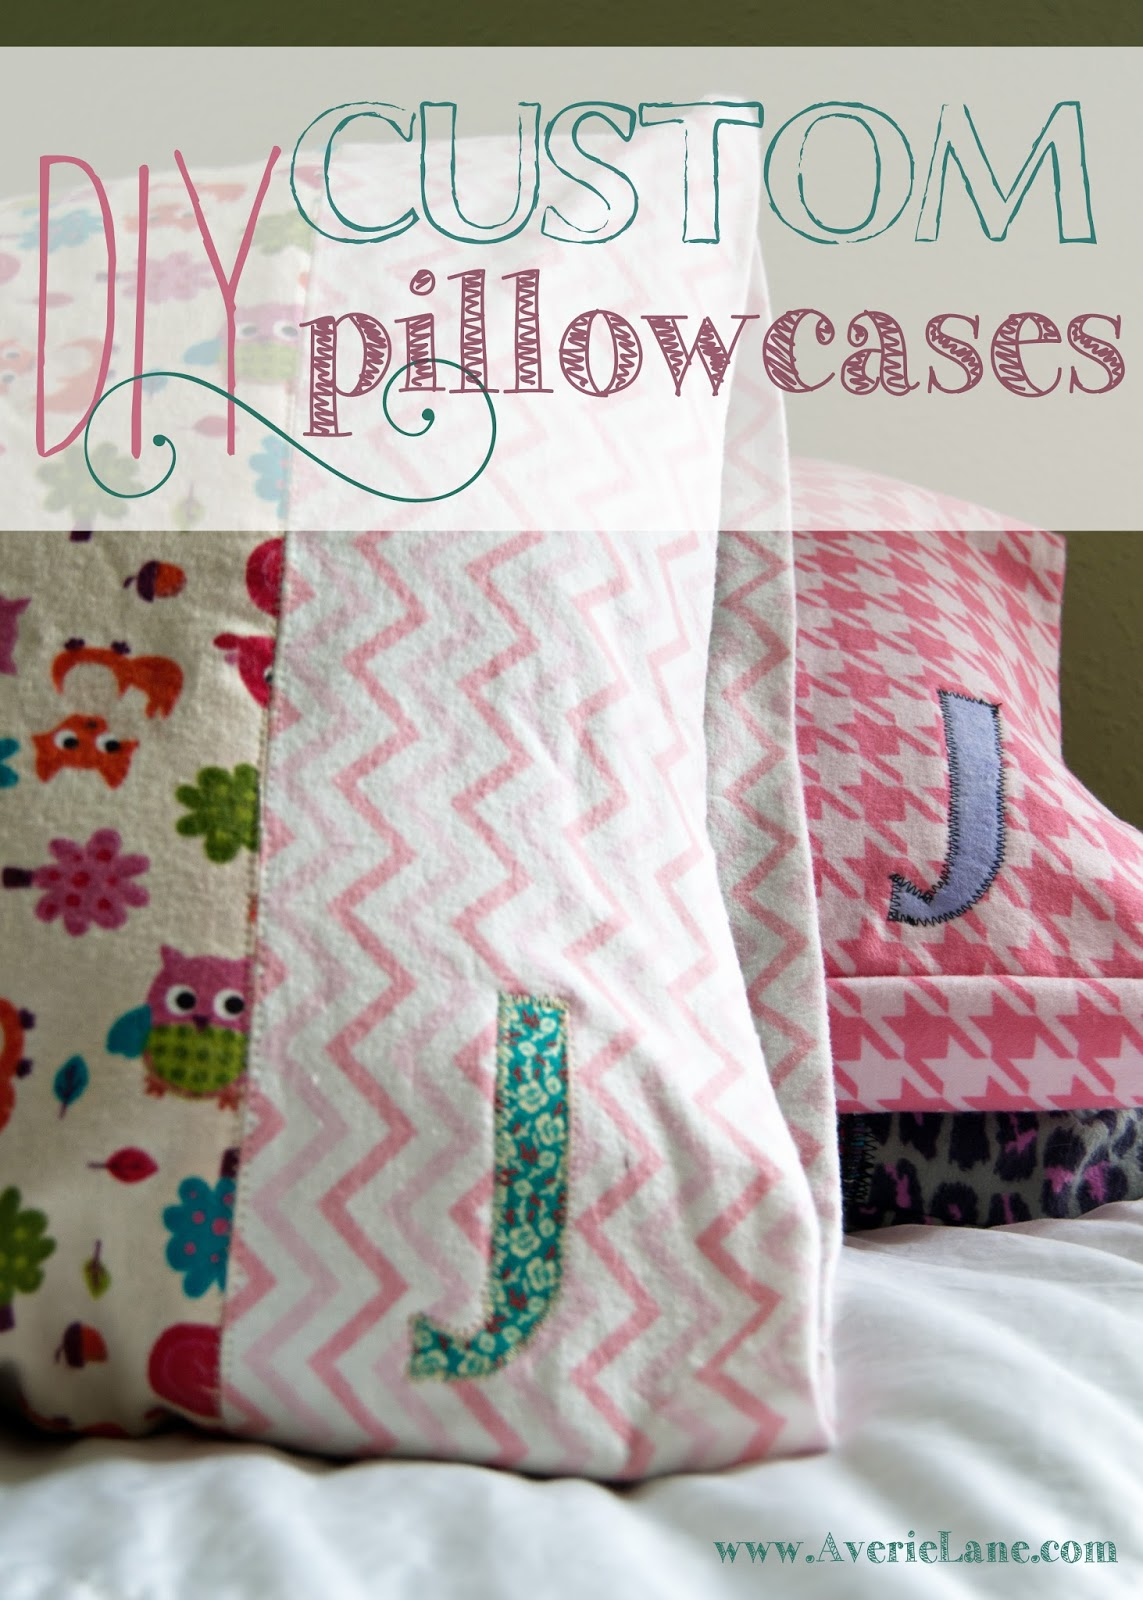 DIY Custom Pillowcases | Averie Lane: DIY Custom Pillowcases